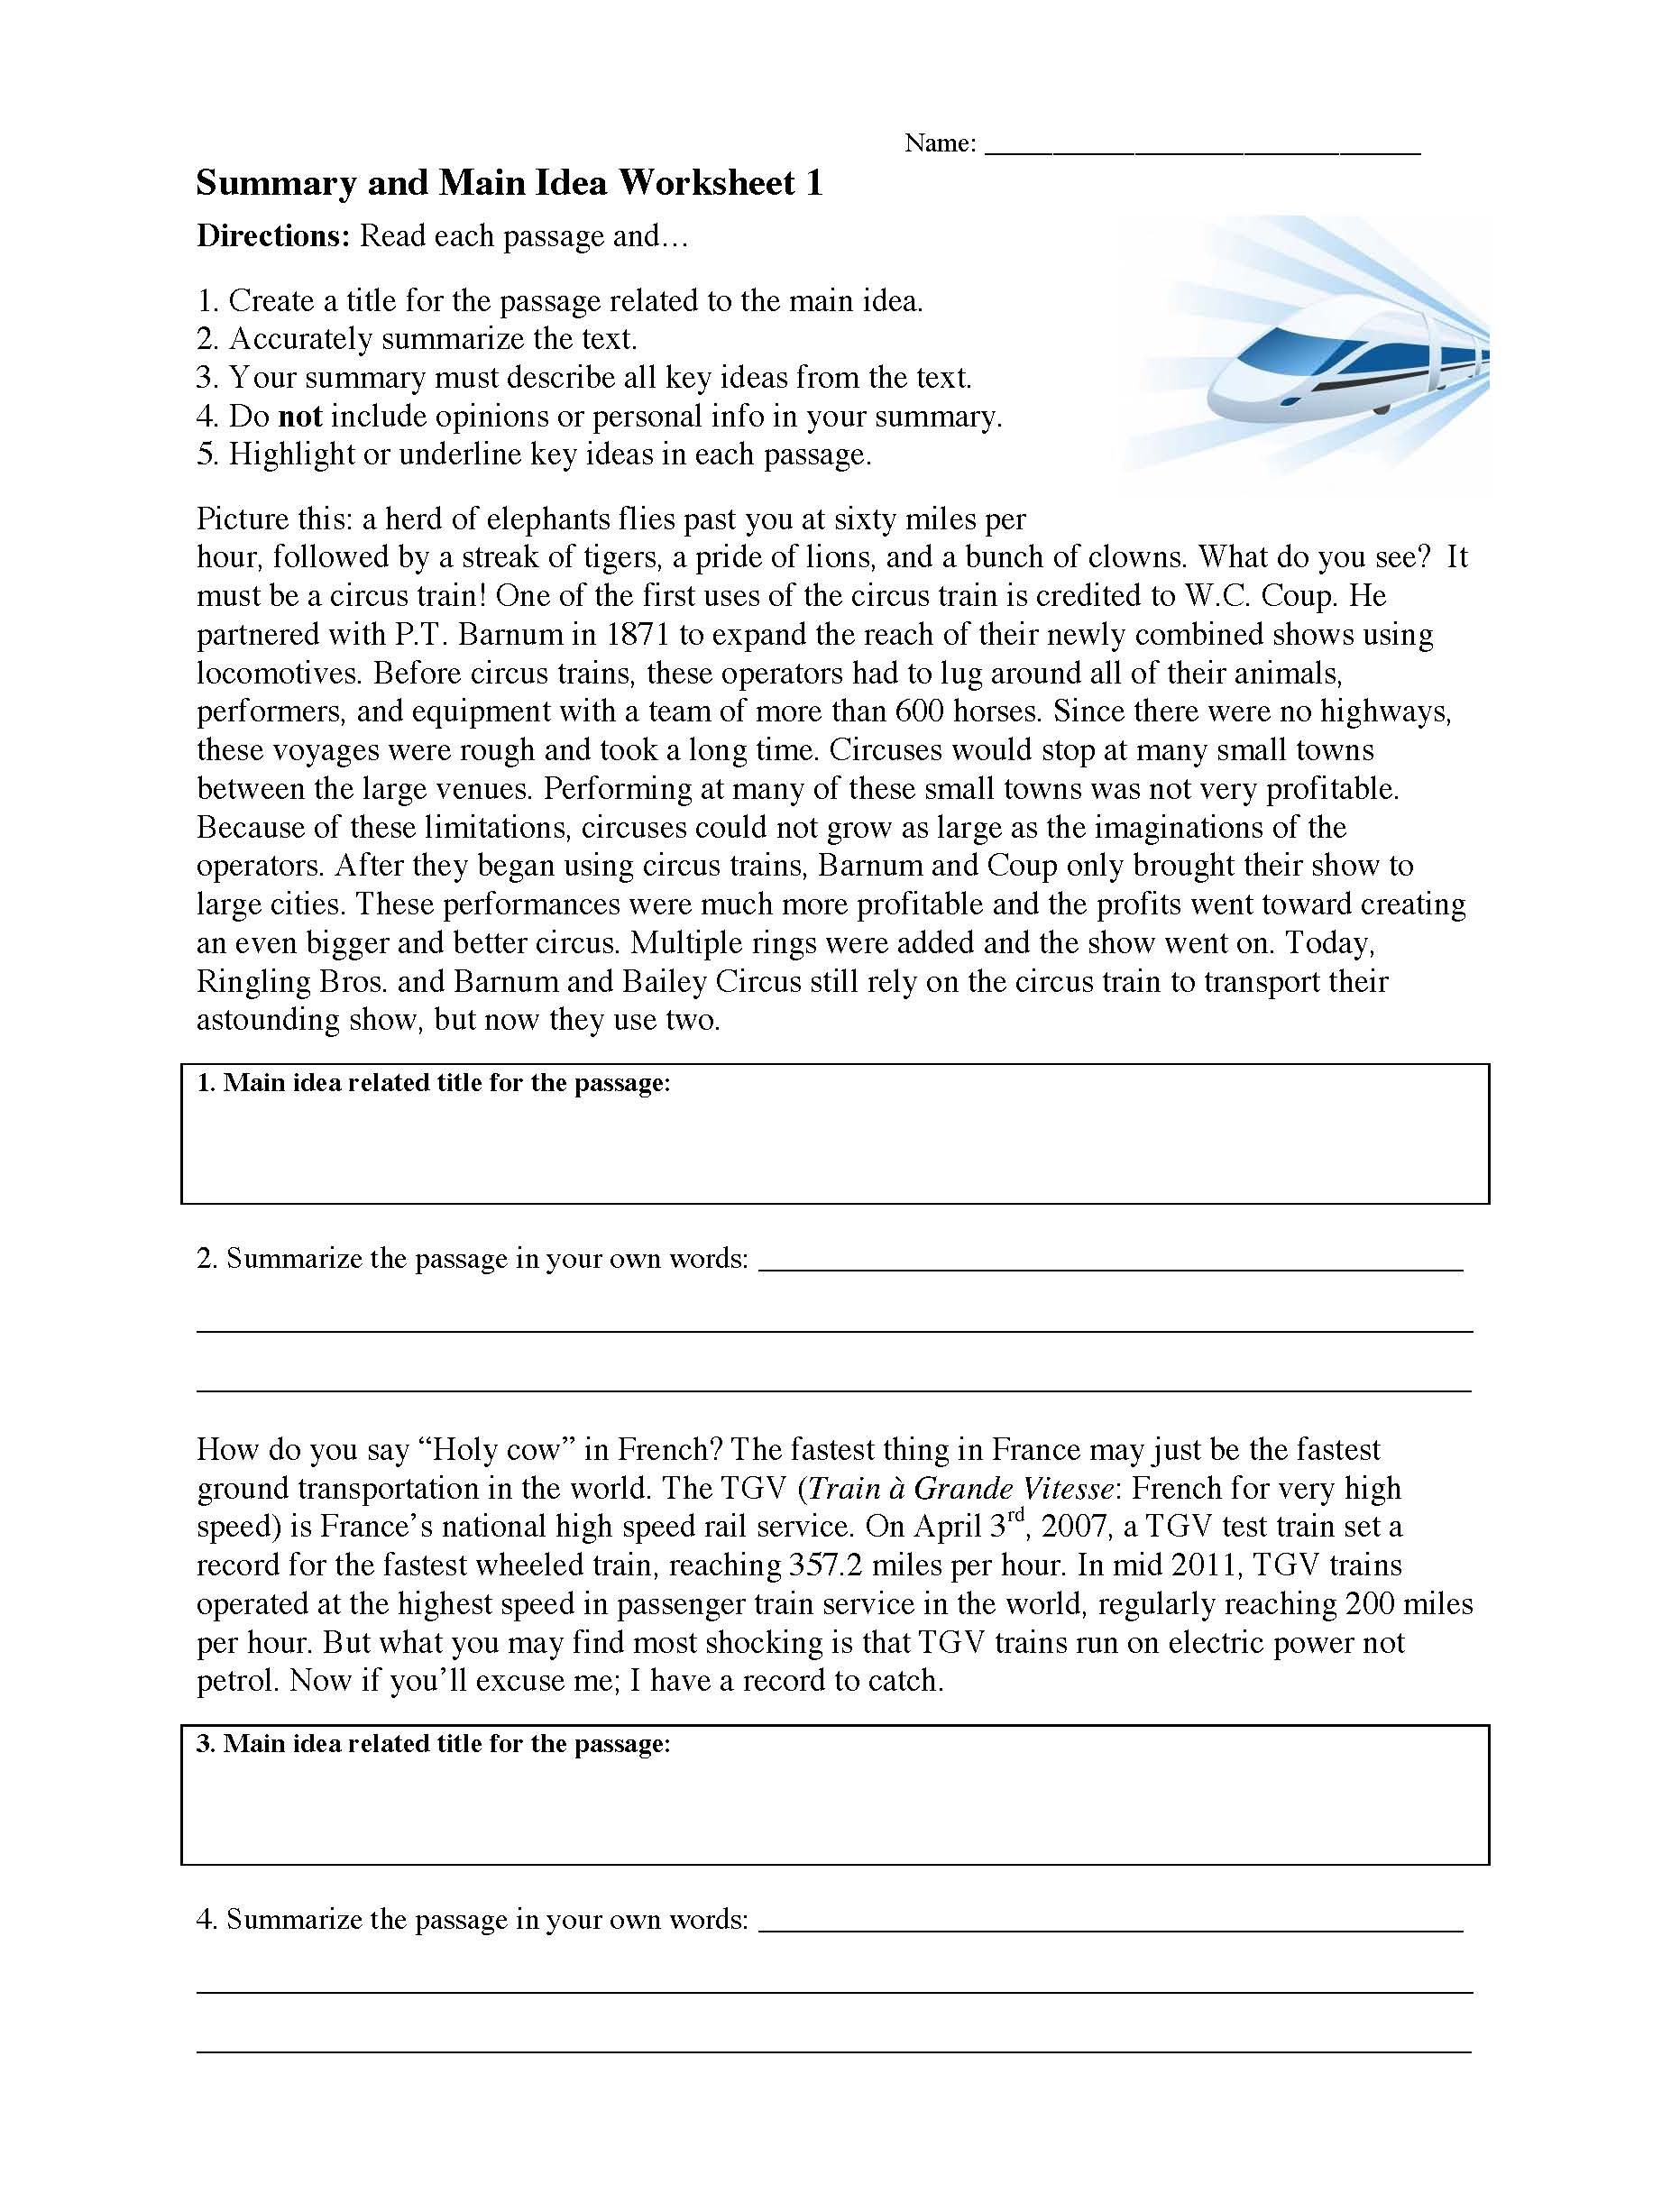 Summarizing Worksheets 2nd Grade Summarizing Worksheets Learn to Summarize